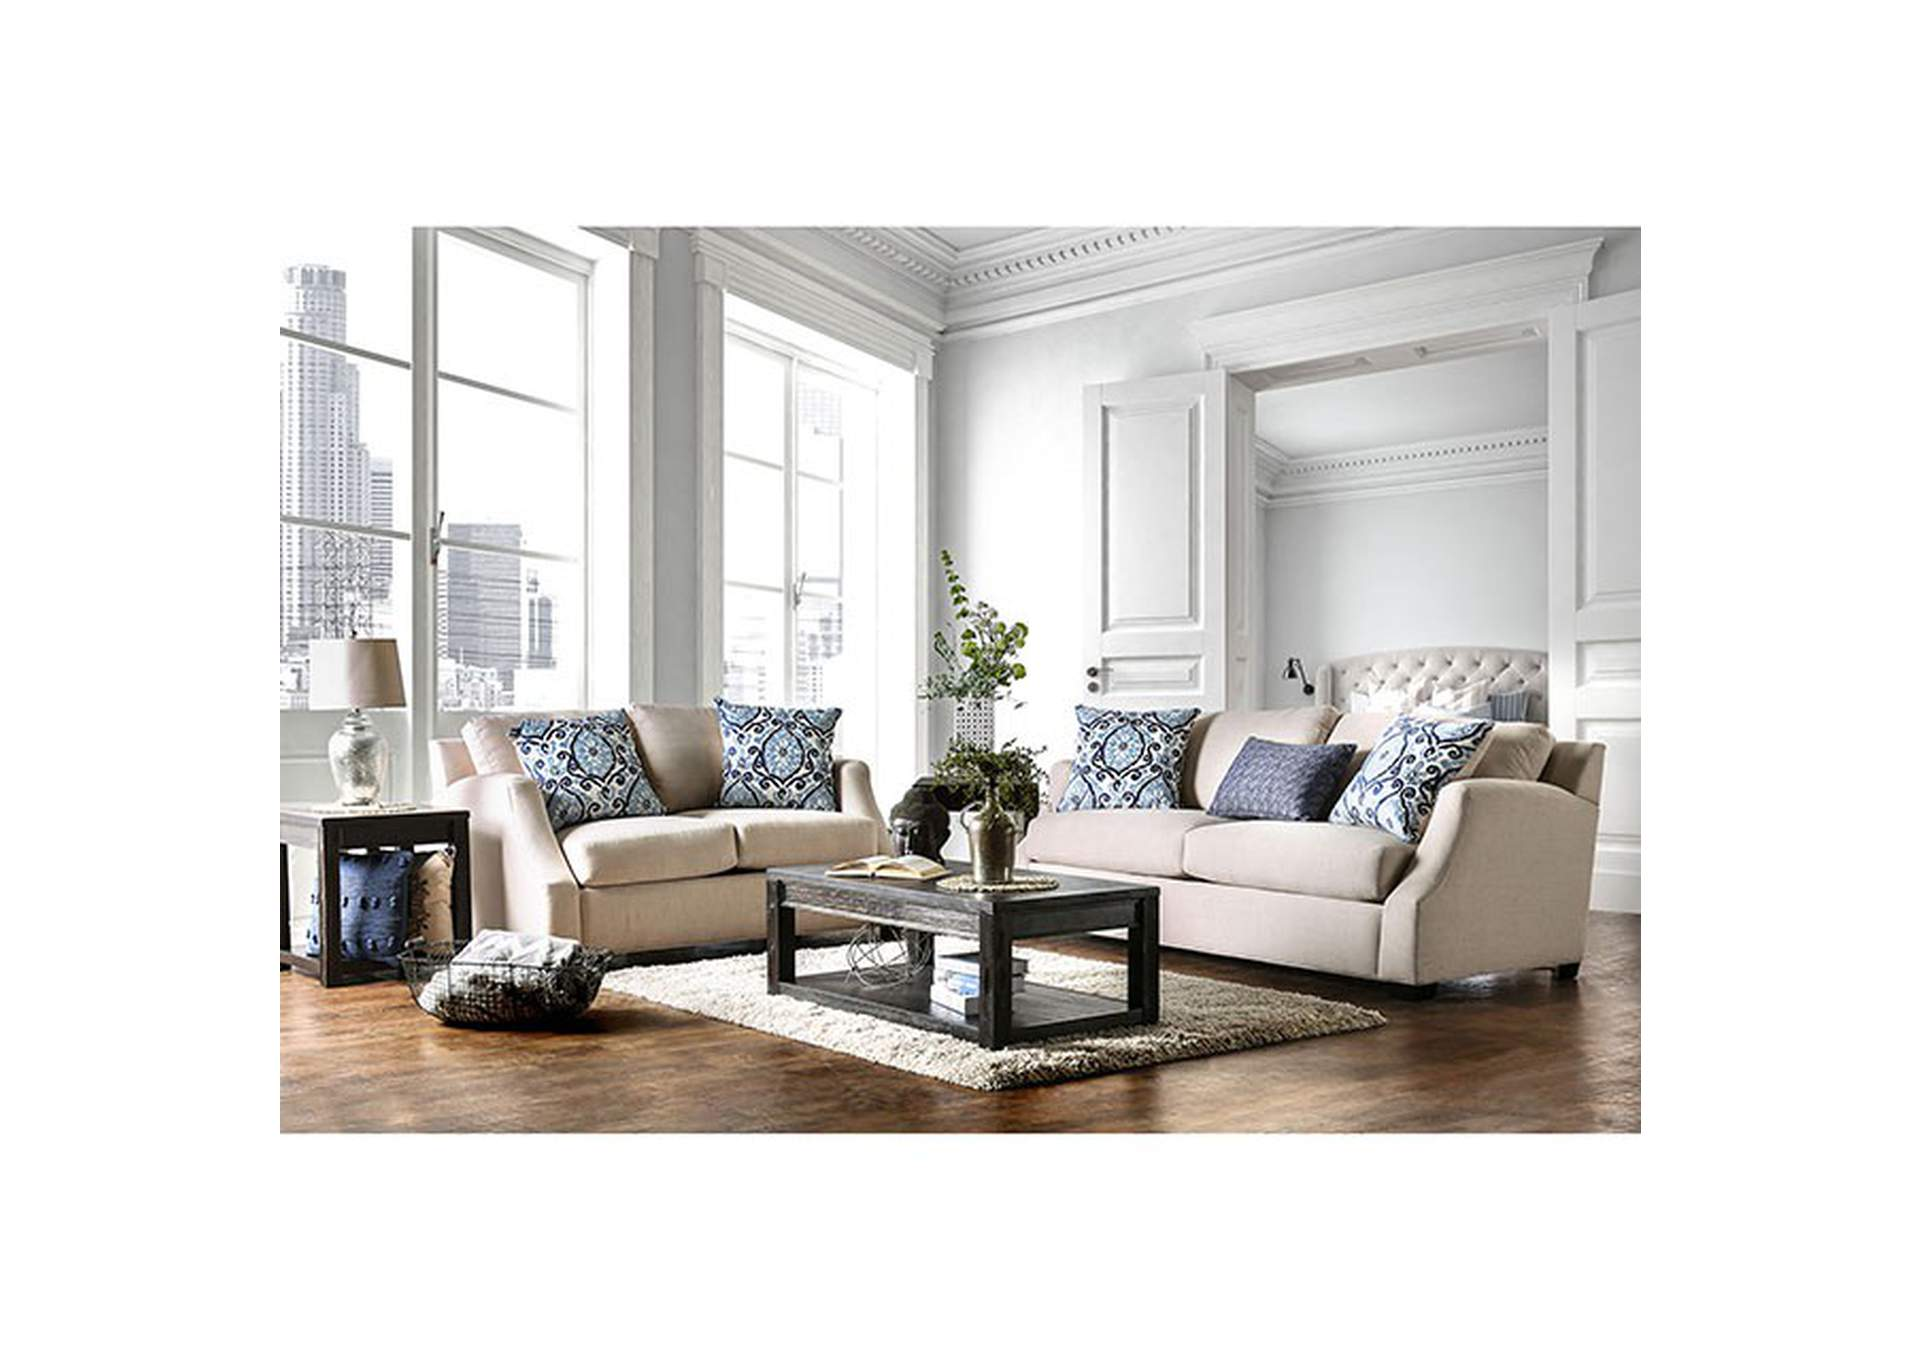 Sensational 363136 Beltran Blue Beige Sofa And Loveseat Set W Pillows Pabps2019 Chair Design Images Pabps2019Com